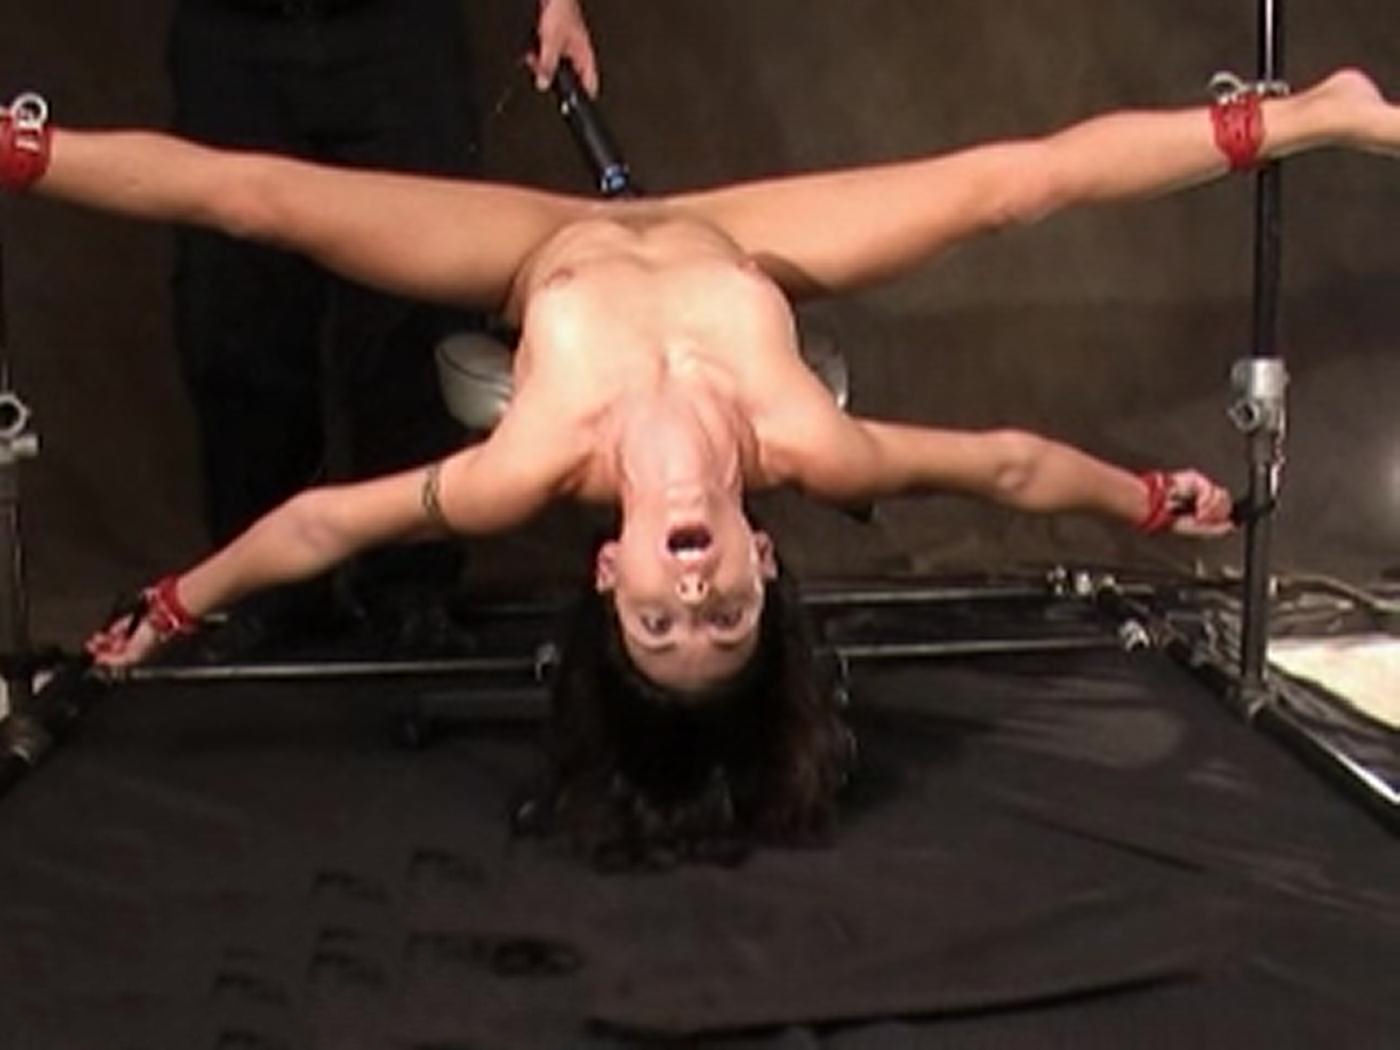 Bondage girl having orgasm